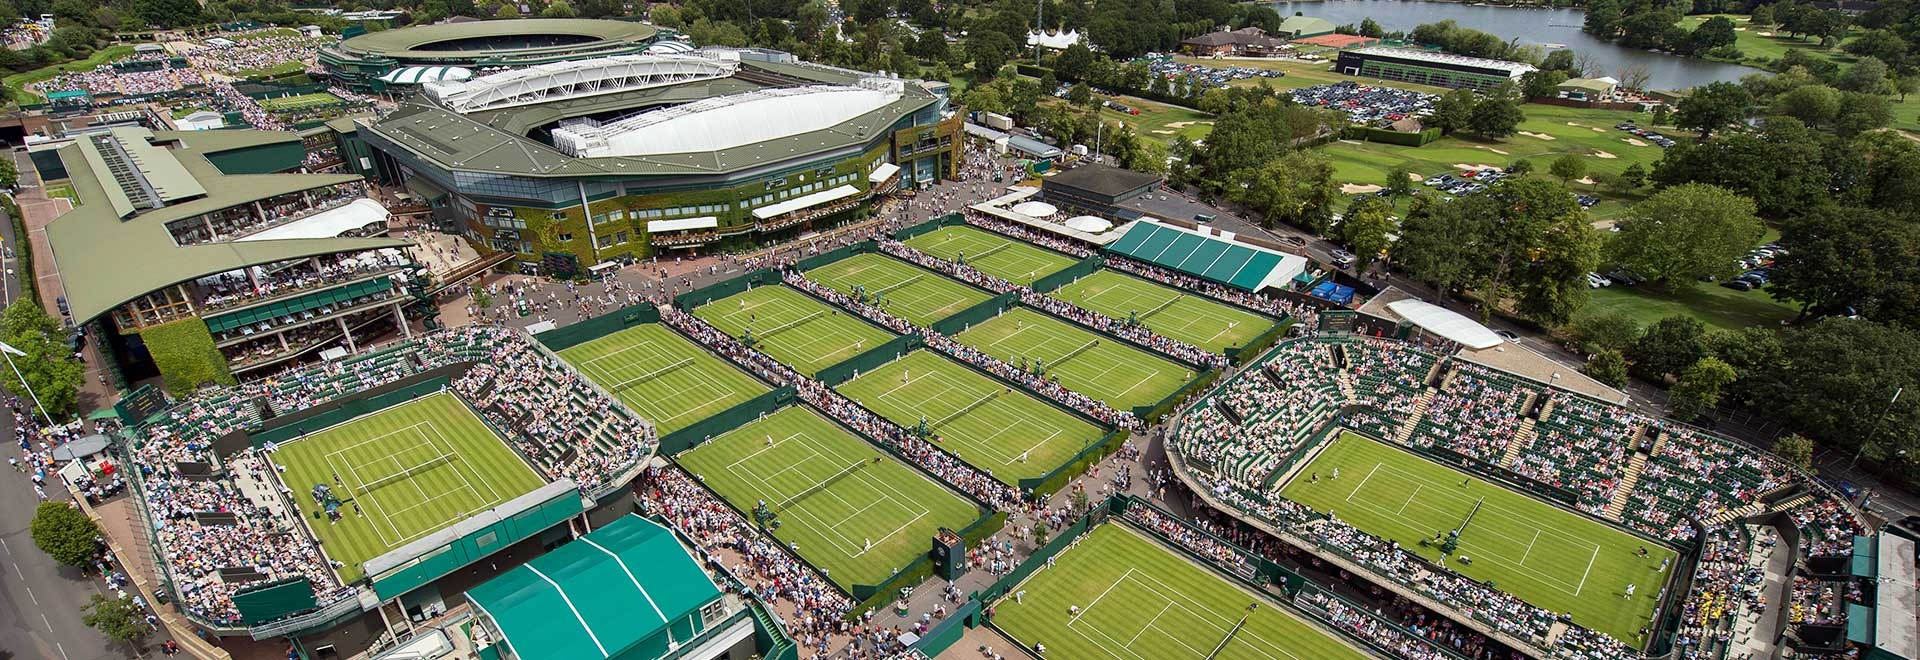 The Championships, Wimbledon - Book. Travel. Play.